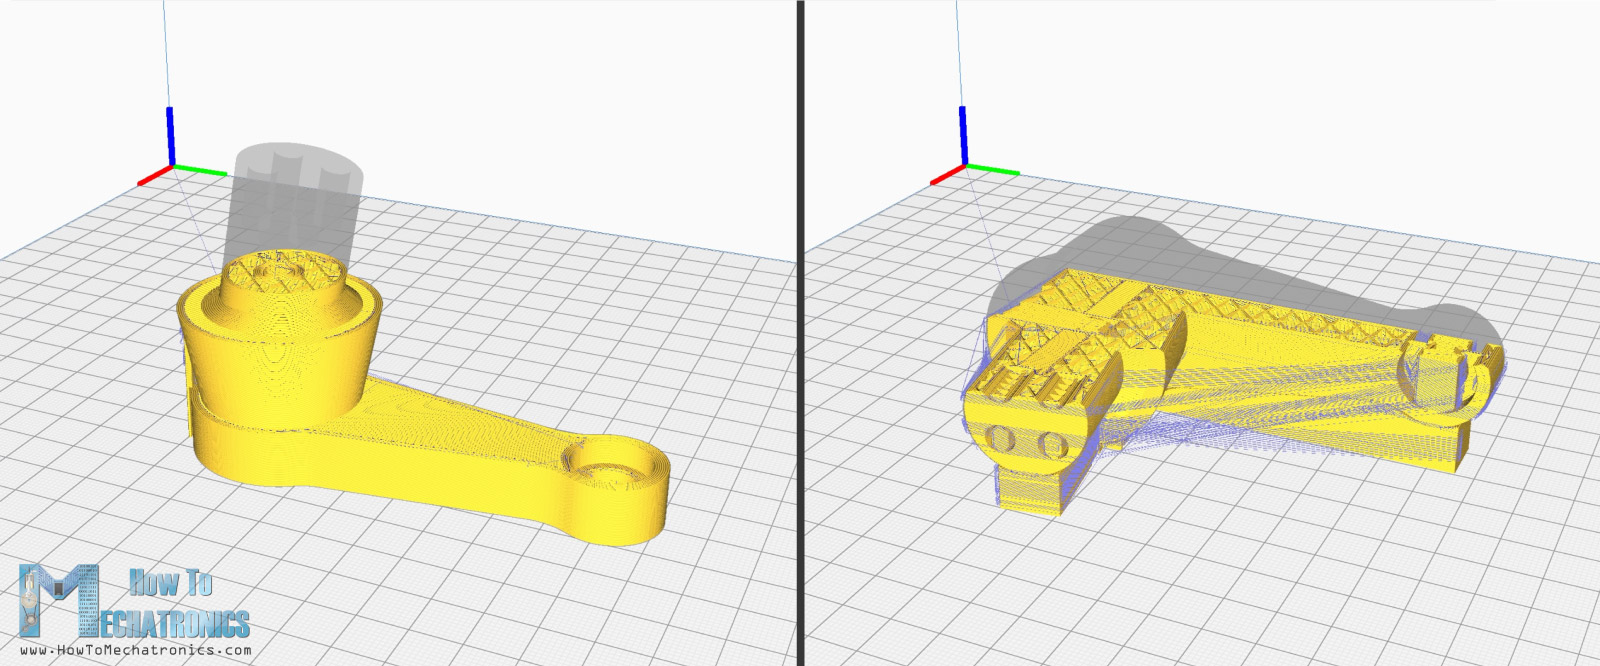 3D printing orientation defines the part strength